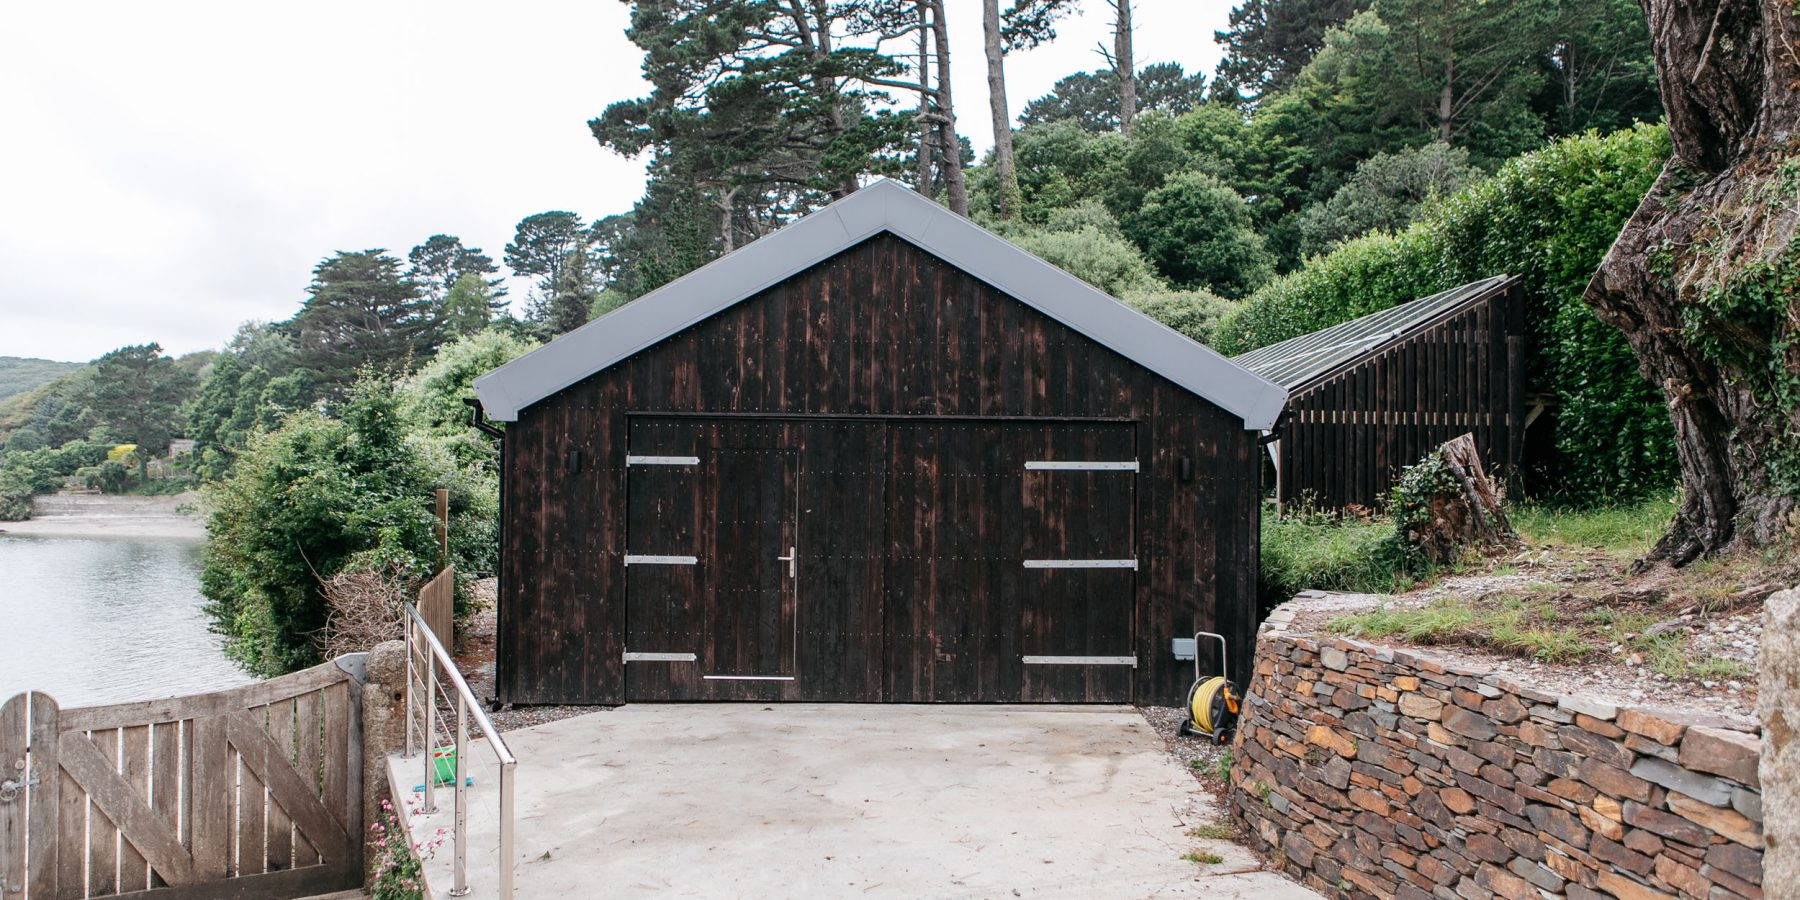 Thumbnail of http://Dark%20wood%20external%20timber%20cladding%20on%20a%20small%20building